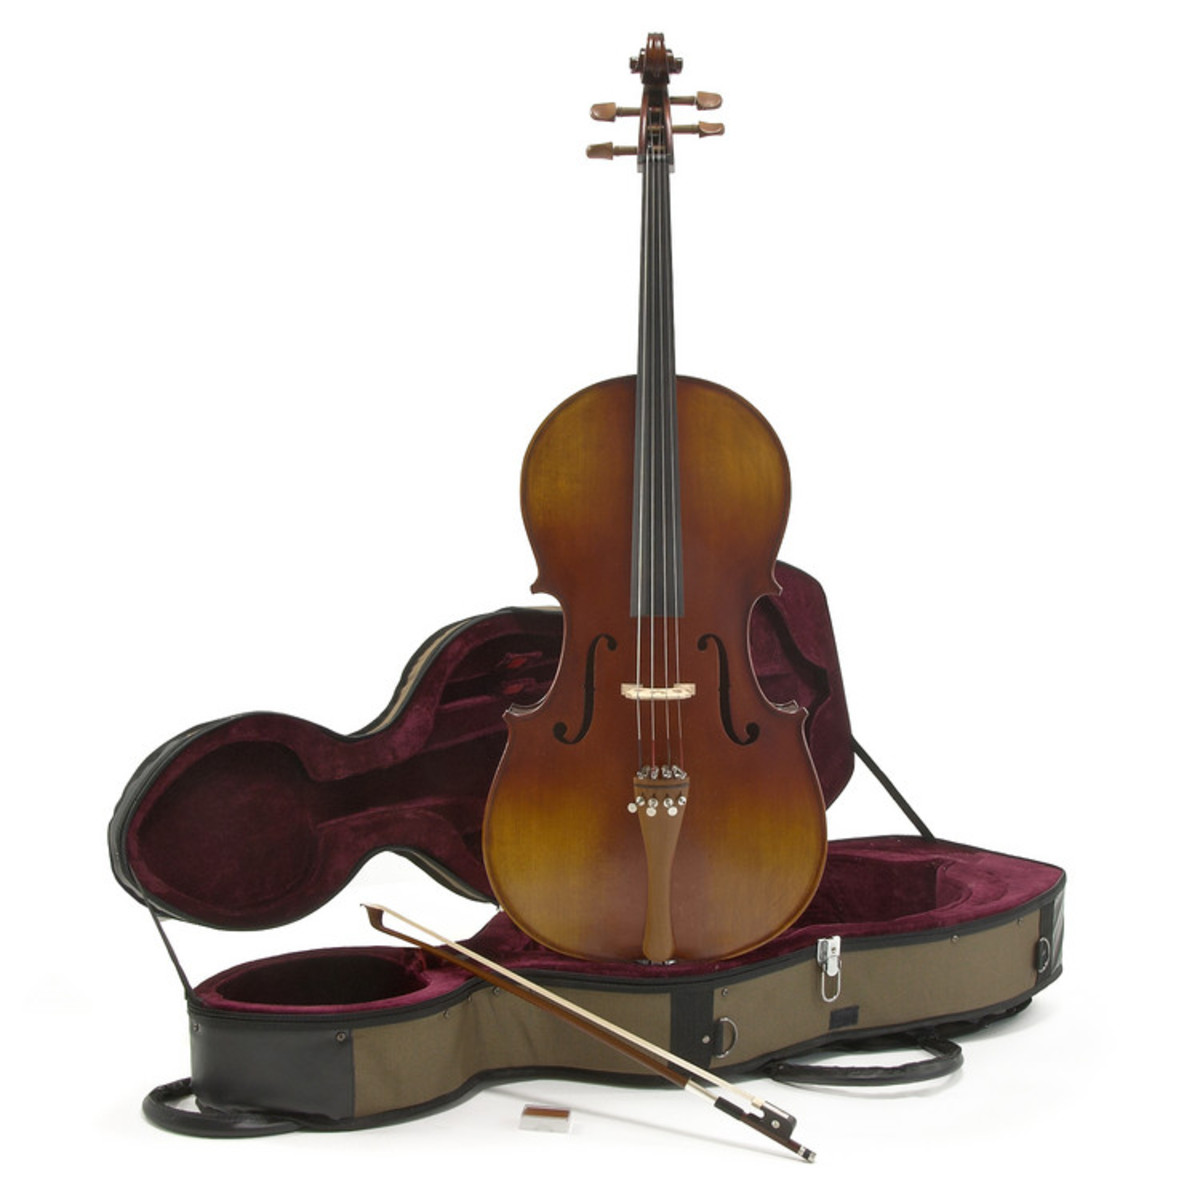 Image of Deluxe 1/4 Cello with Case Antique Fade by Gear4music